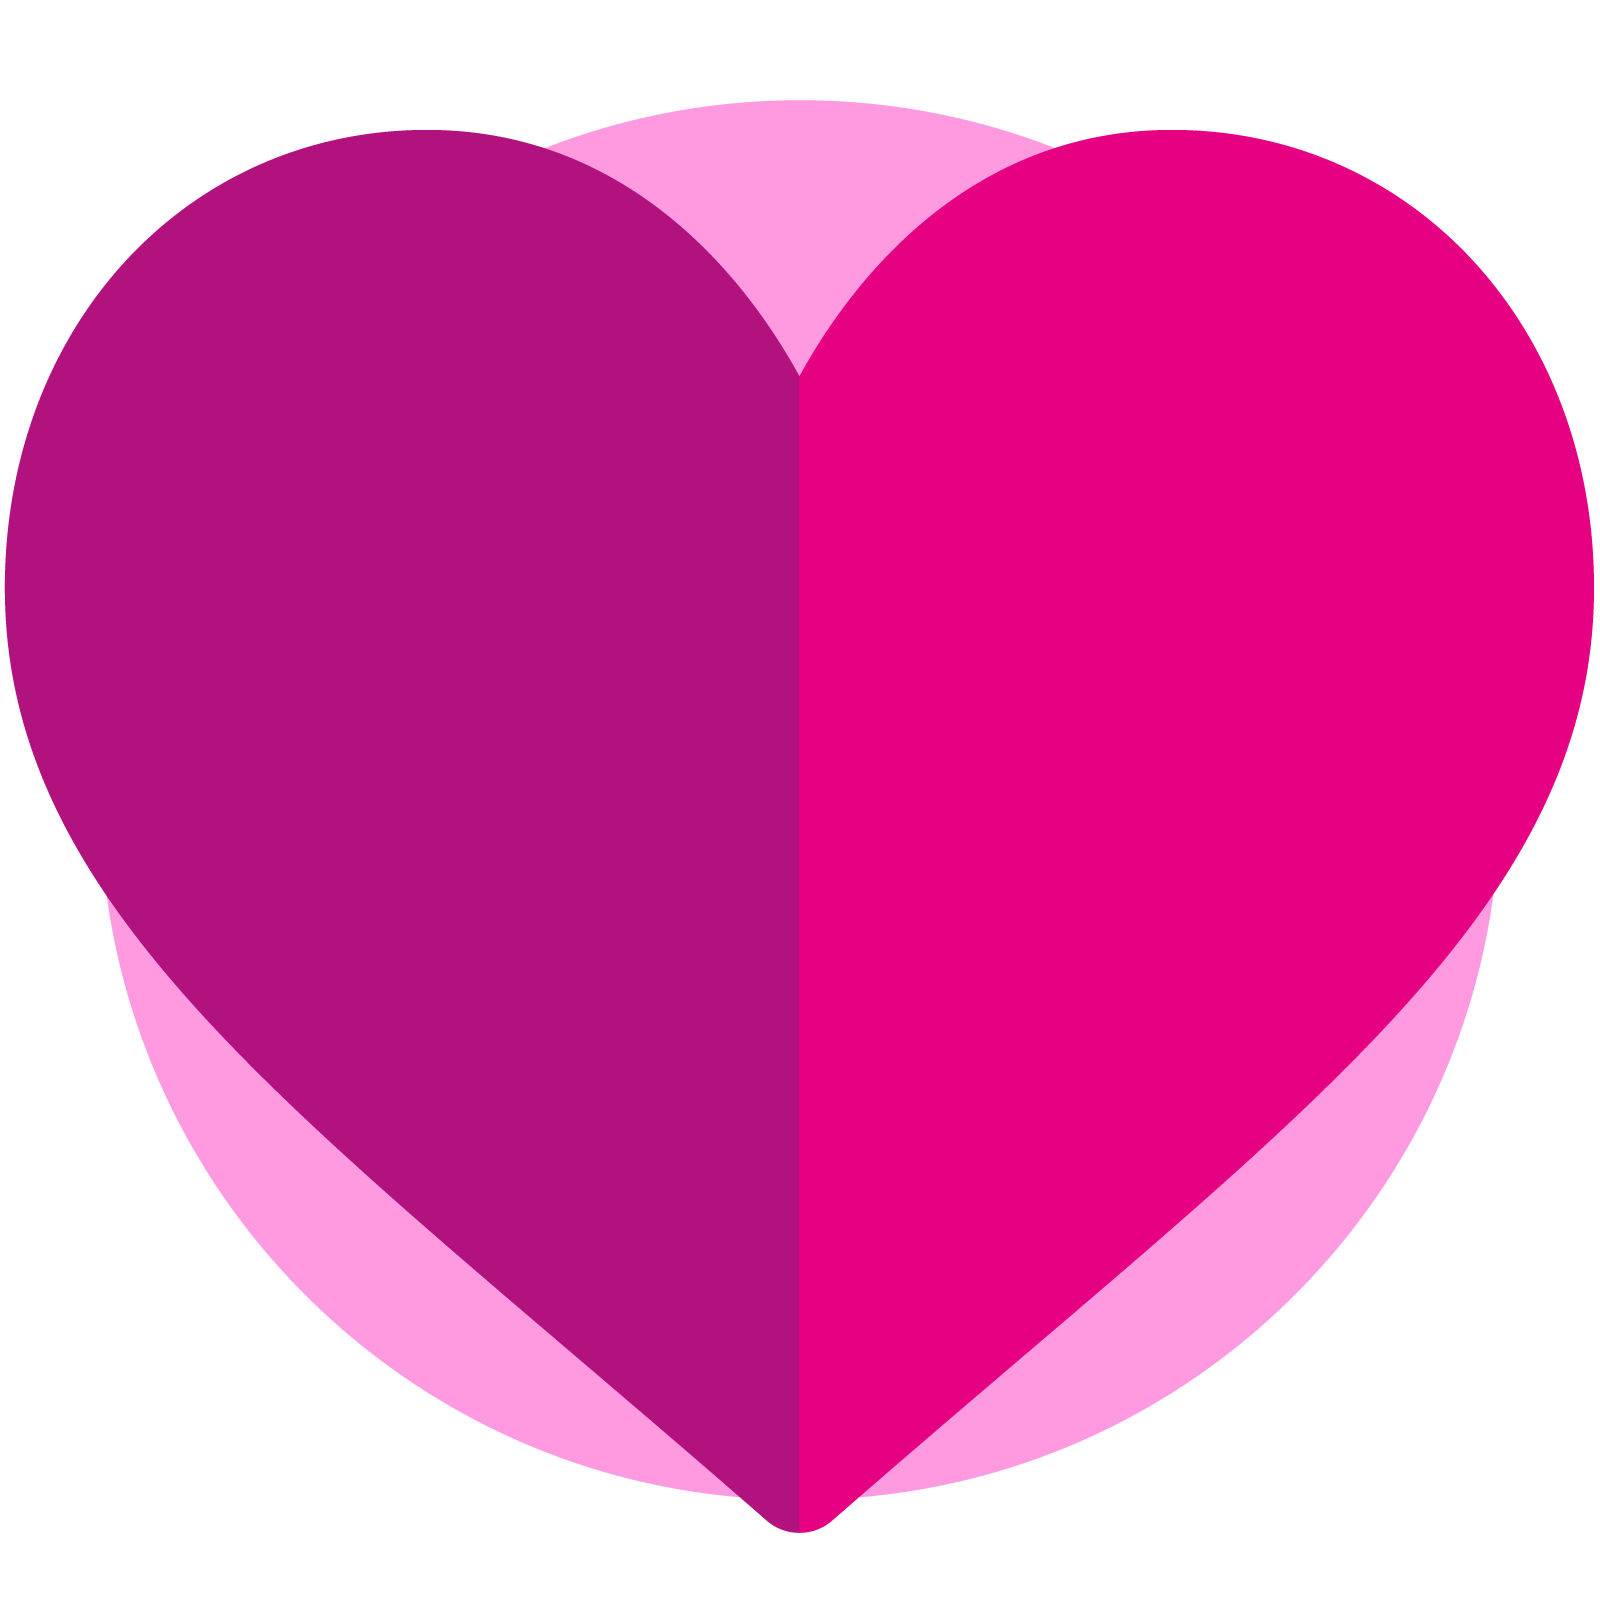 Icon of a folded heart